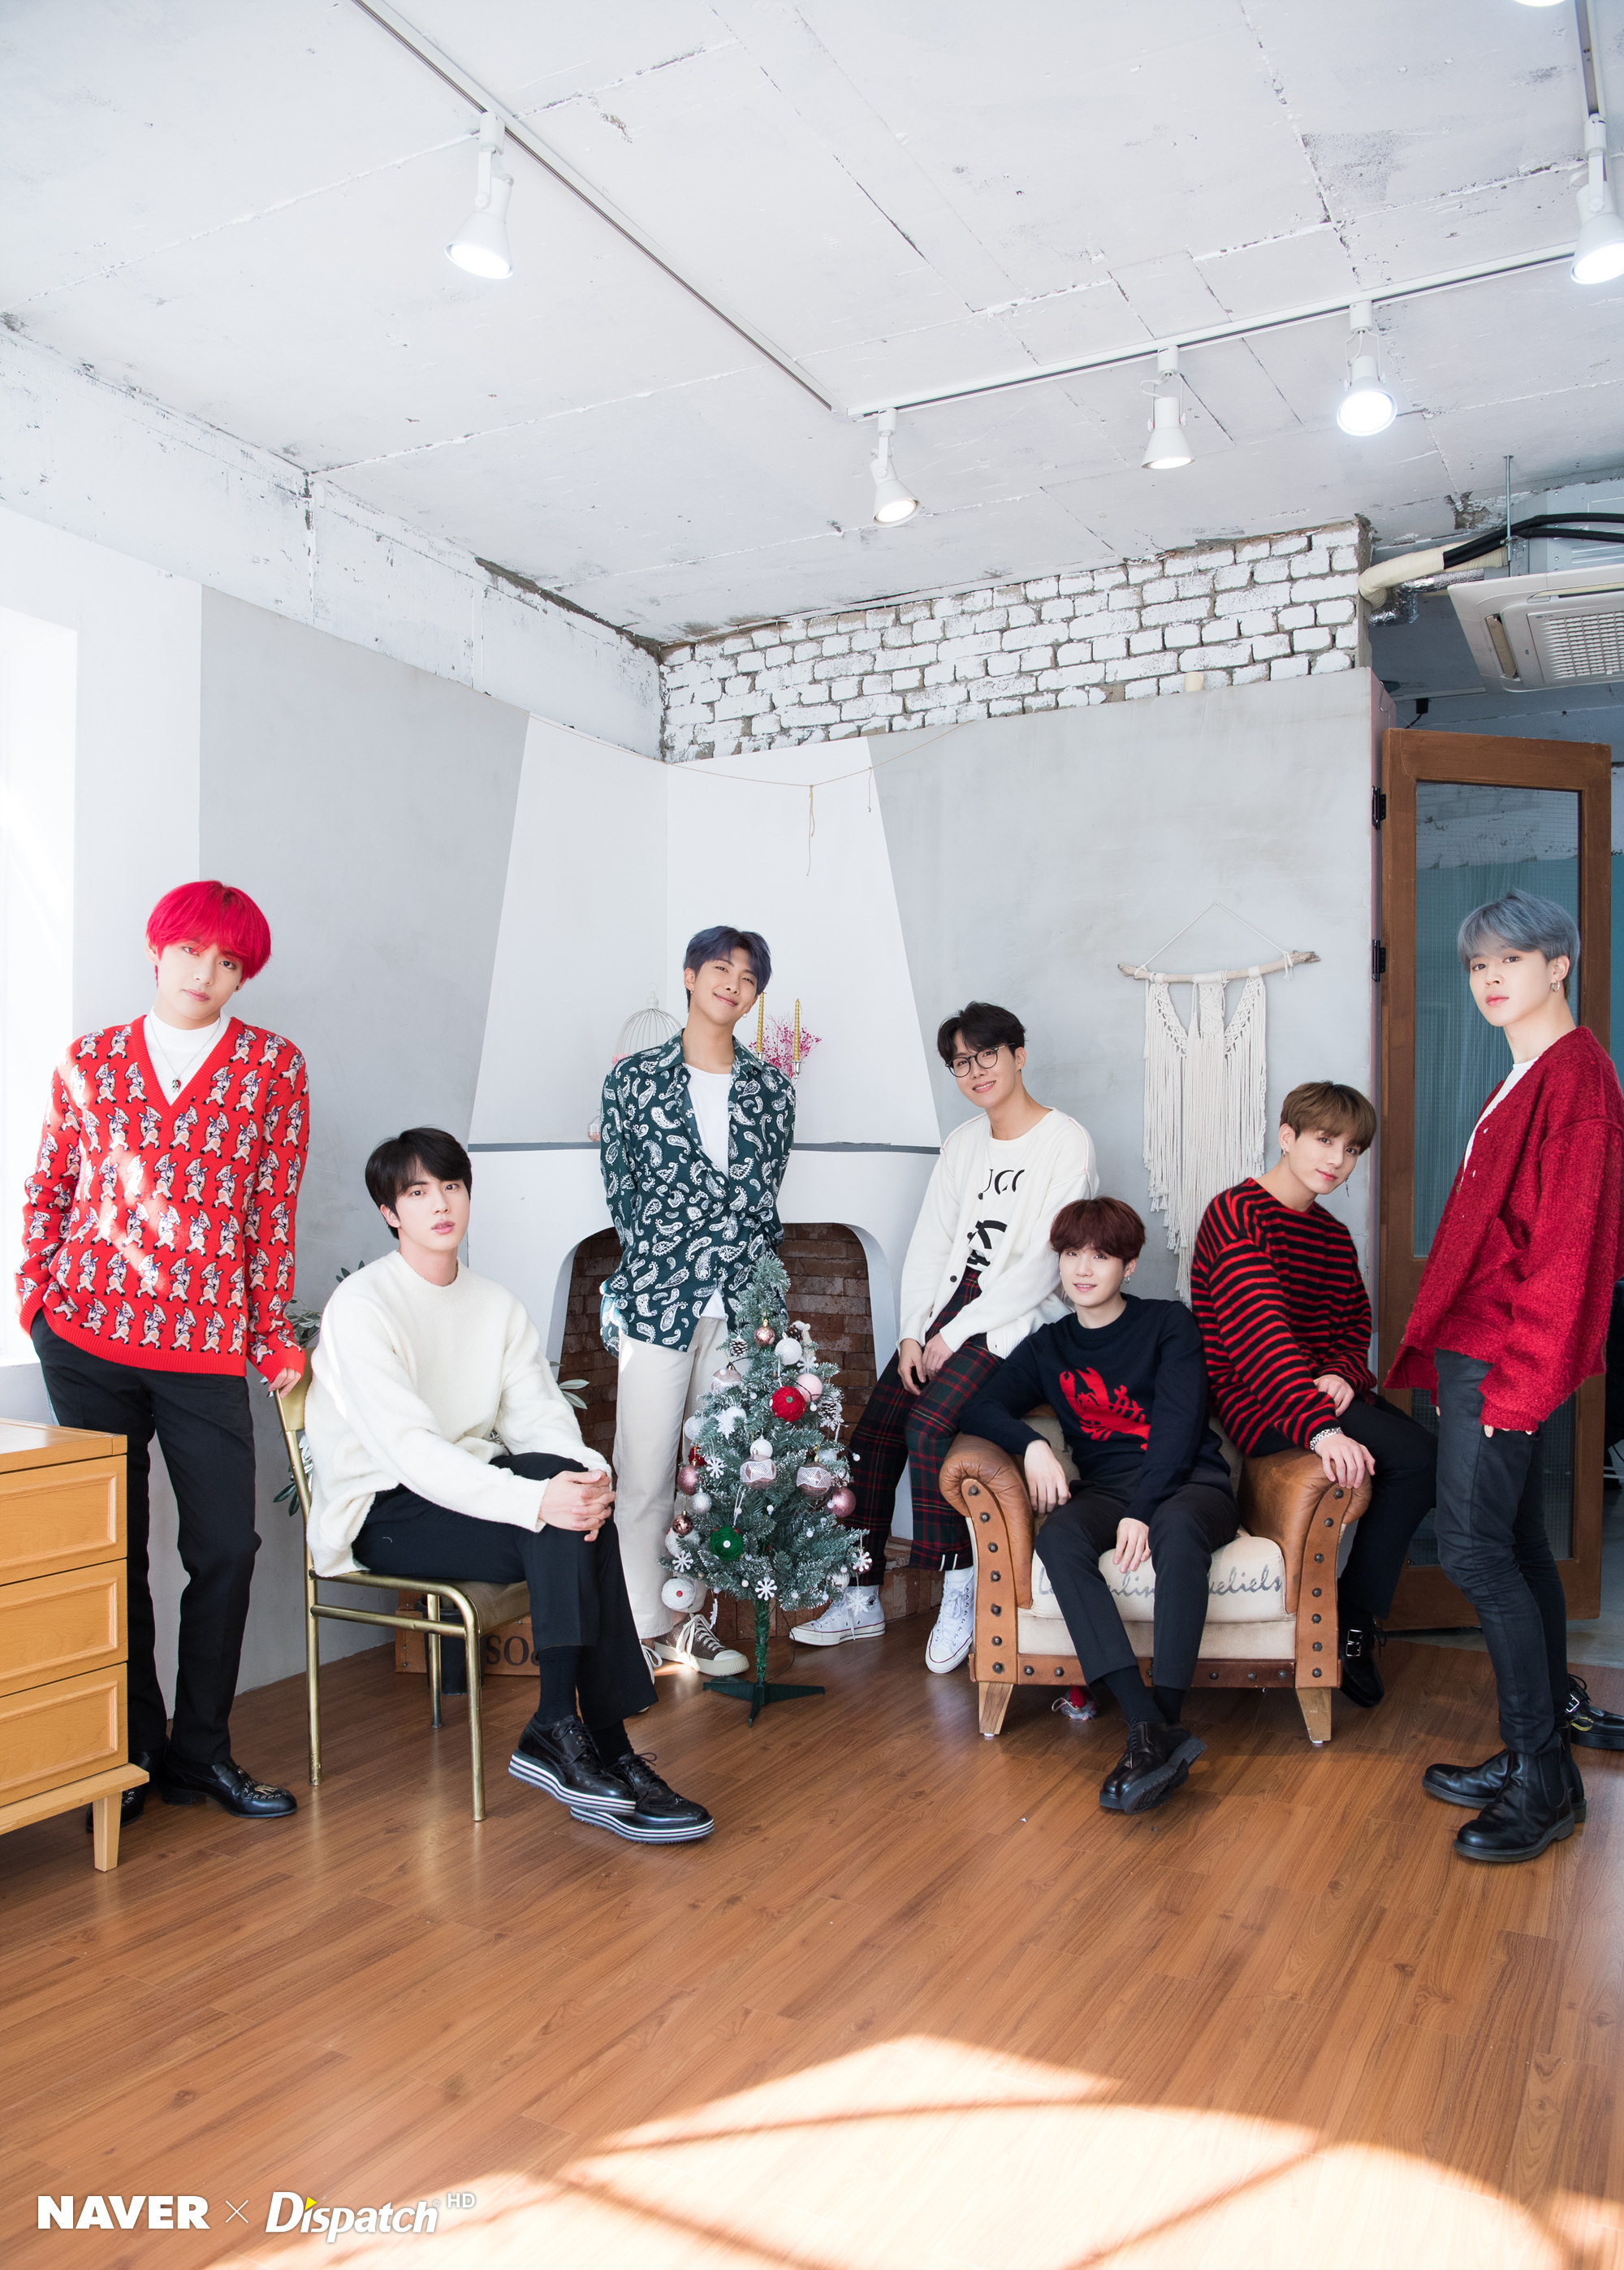 Picture Naverxdispatch Bts Christmas Special 181225